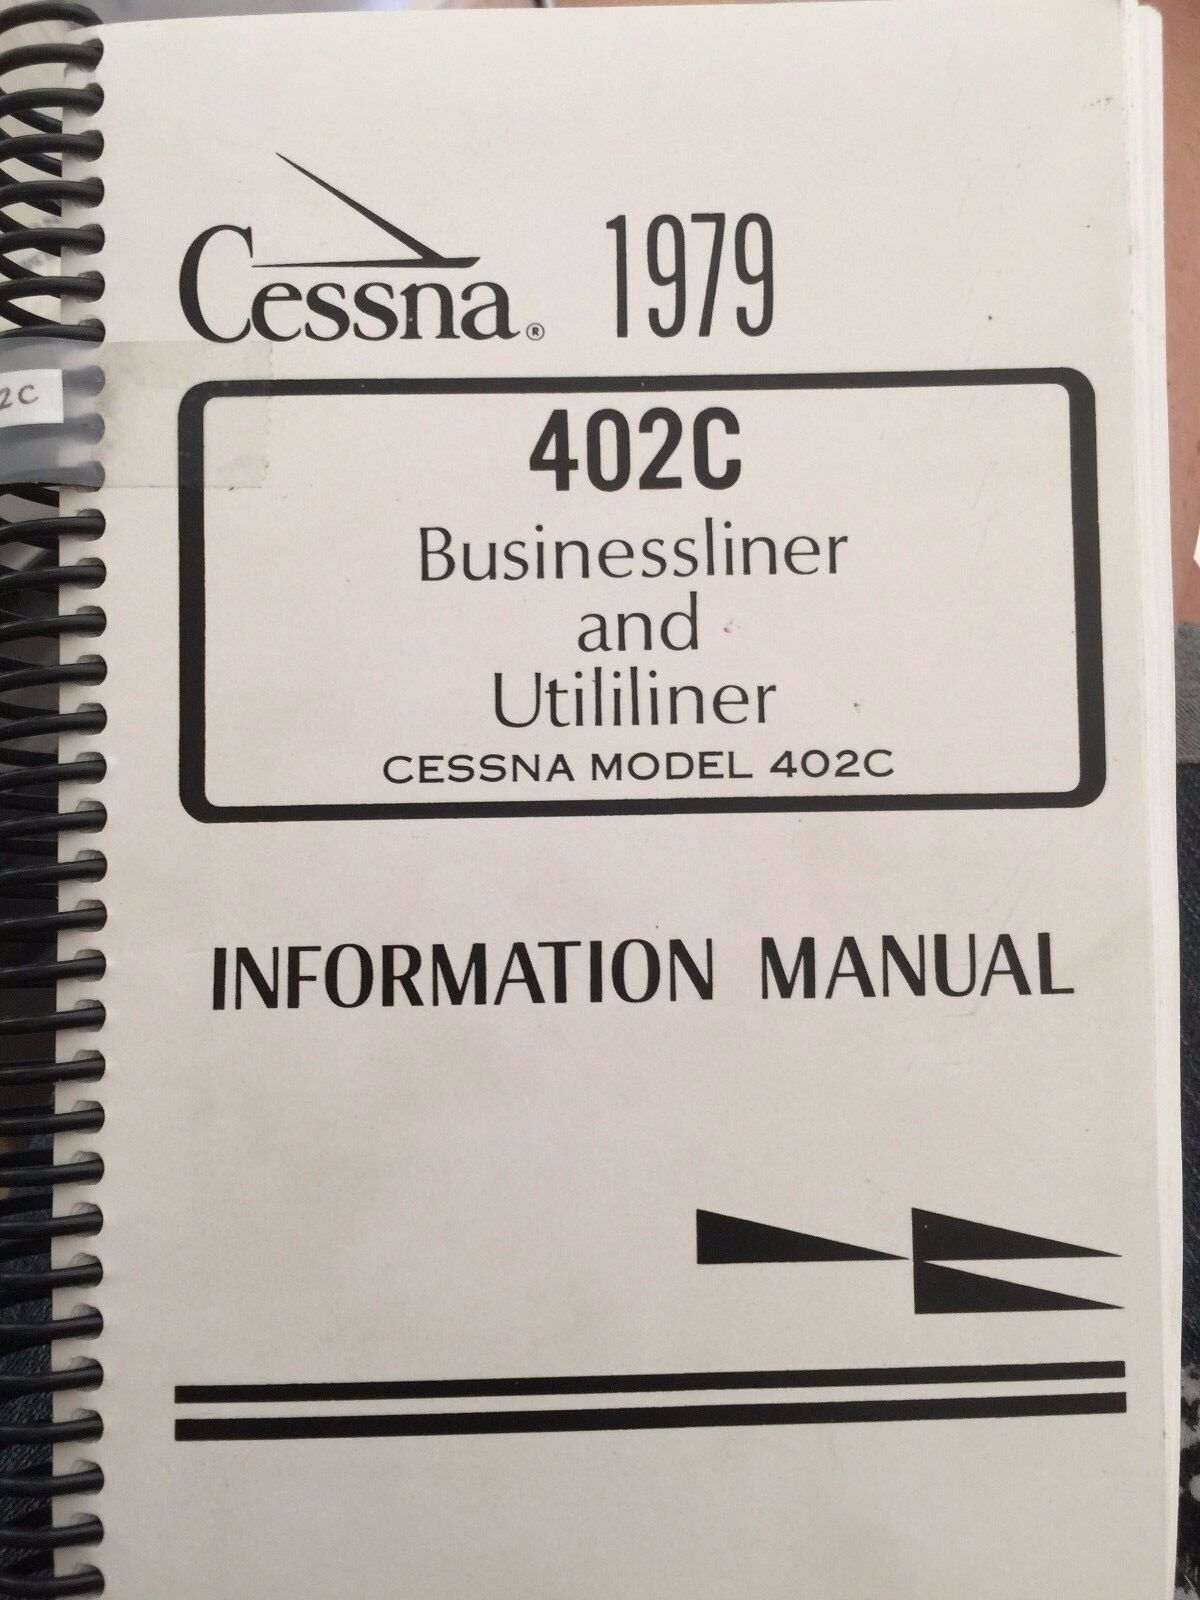 New Cessna 1979 402C Ringed Flight Information Manual D1571-13 79402IM